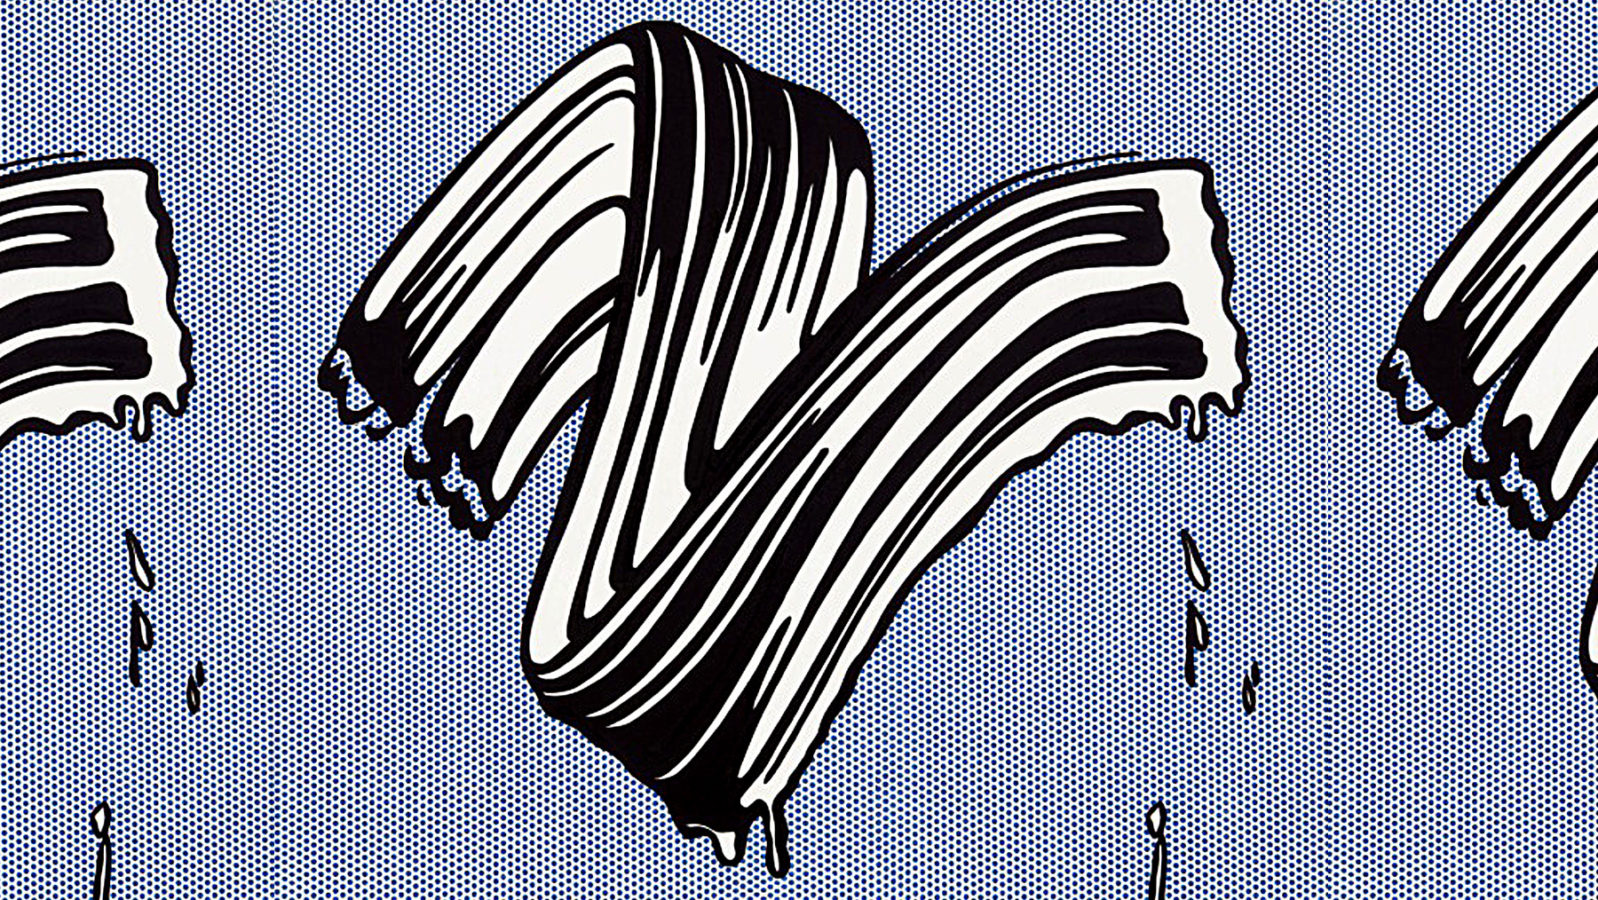 Roy Lichtenstein's Brushstroke might fetch up to RM130 mil. at Sotheby's